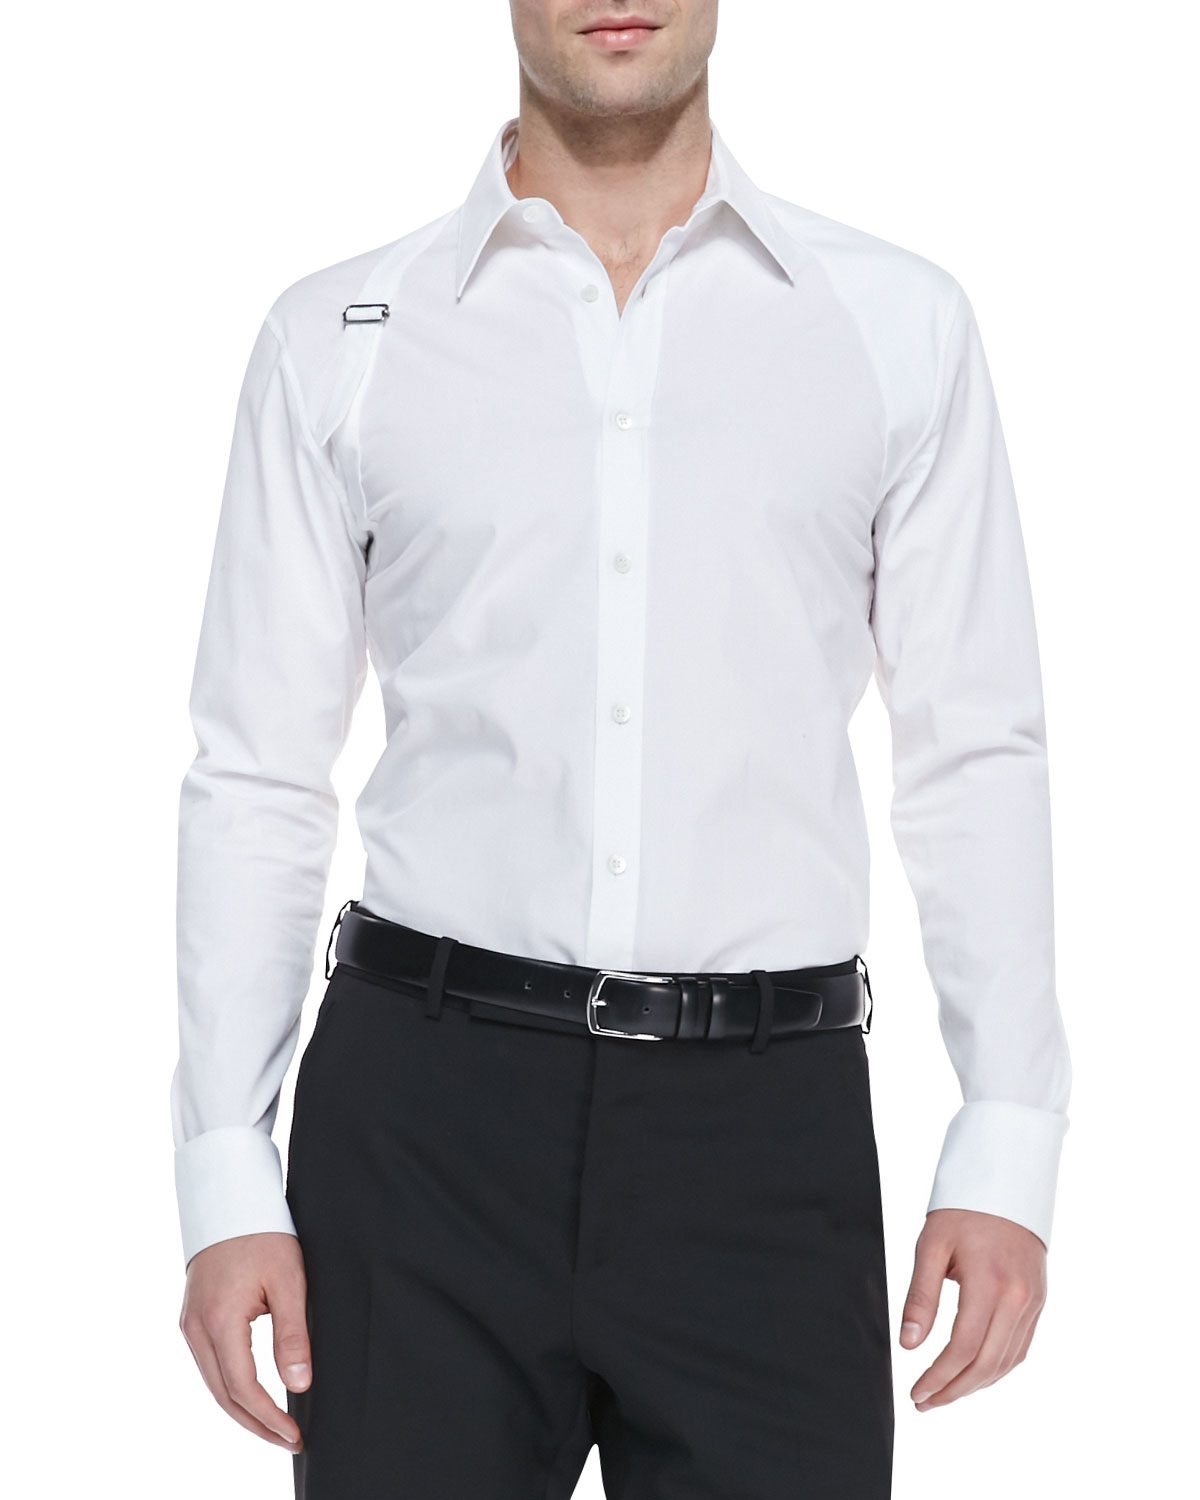 Get To Buy Sale Online harness shirt - White Alexander McQueen Shopping Online With Mastercard Inexpensive Online Low Cost Discounts Cheap Price 0slvNsA